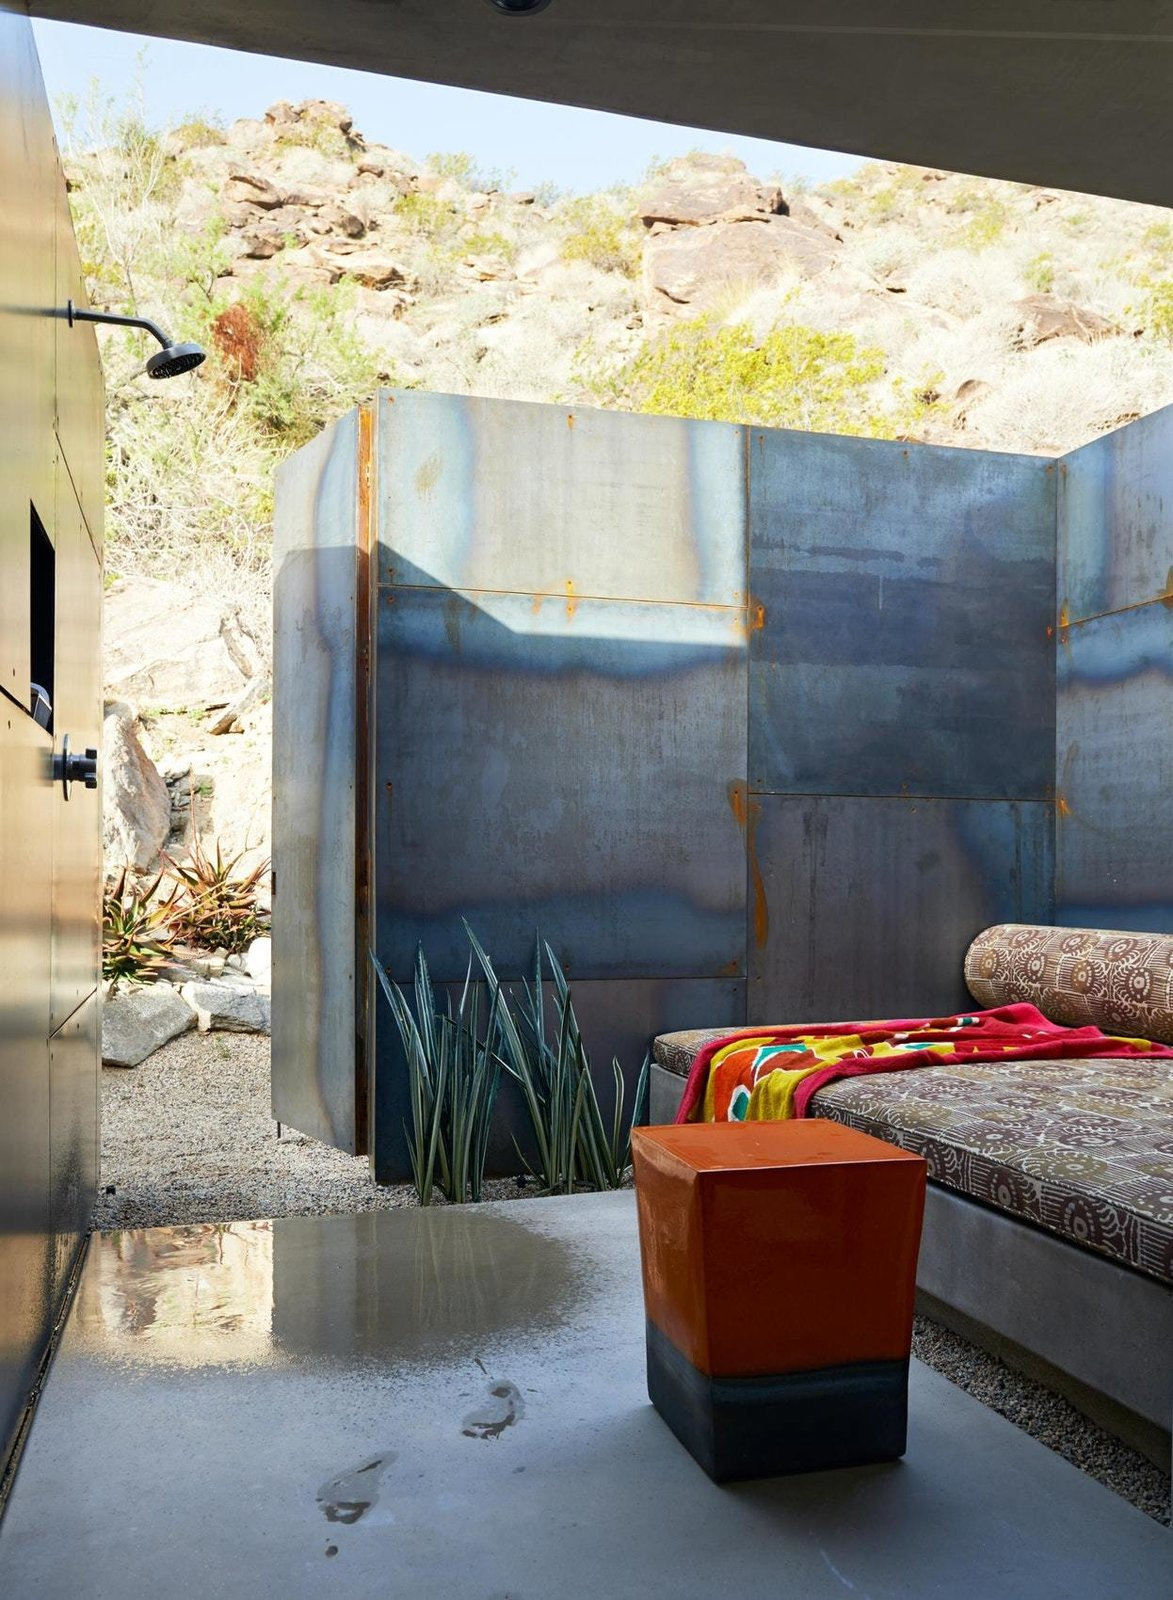 Outdoor, Hardscapes, Boulders, and Shower Pools, Tubs, Shower  On the Rocks